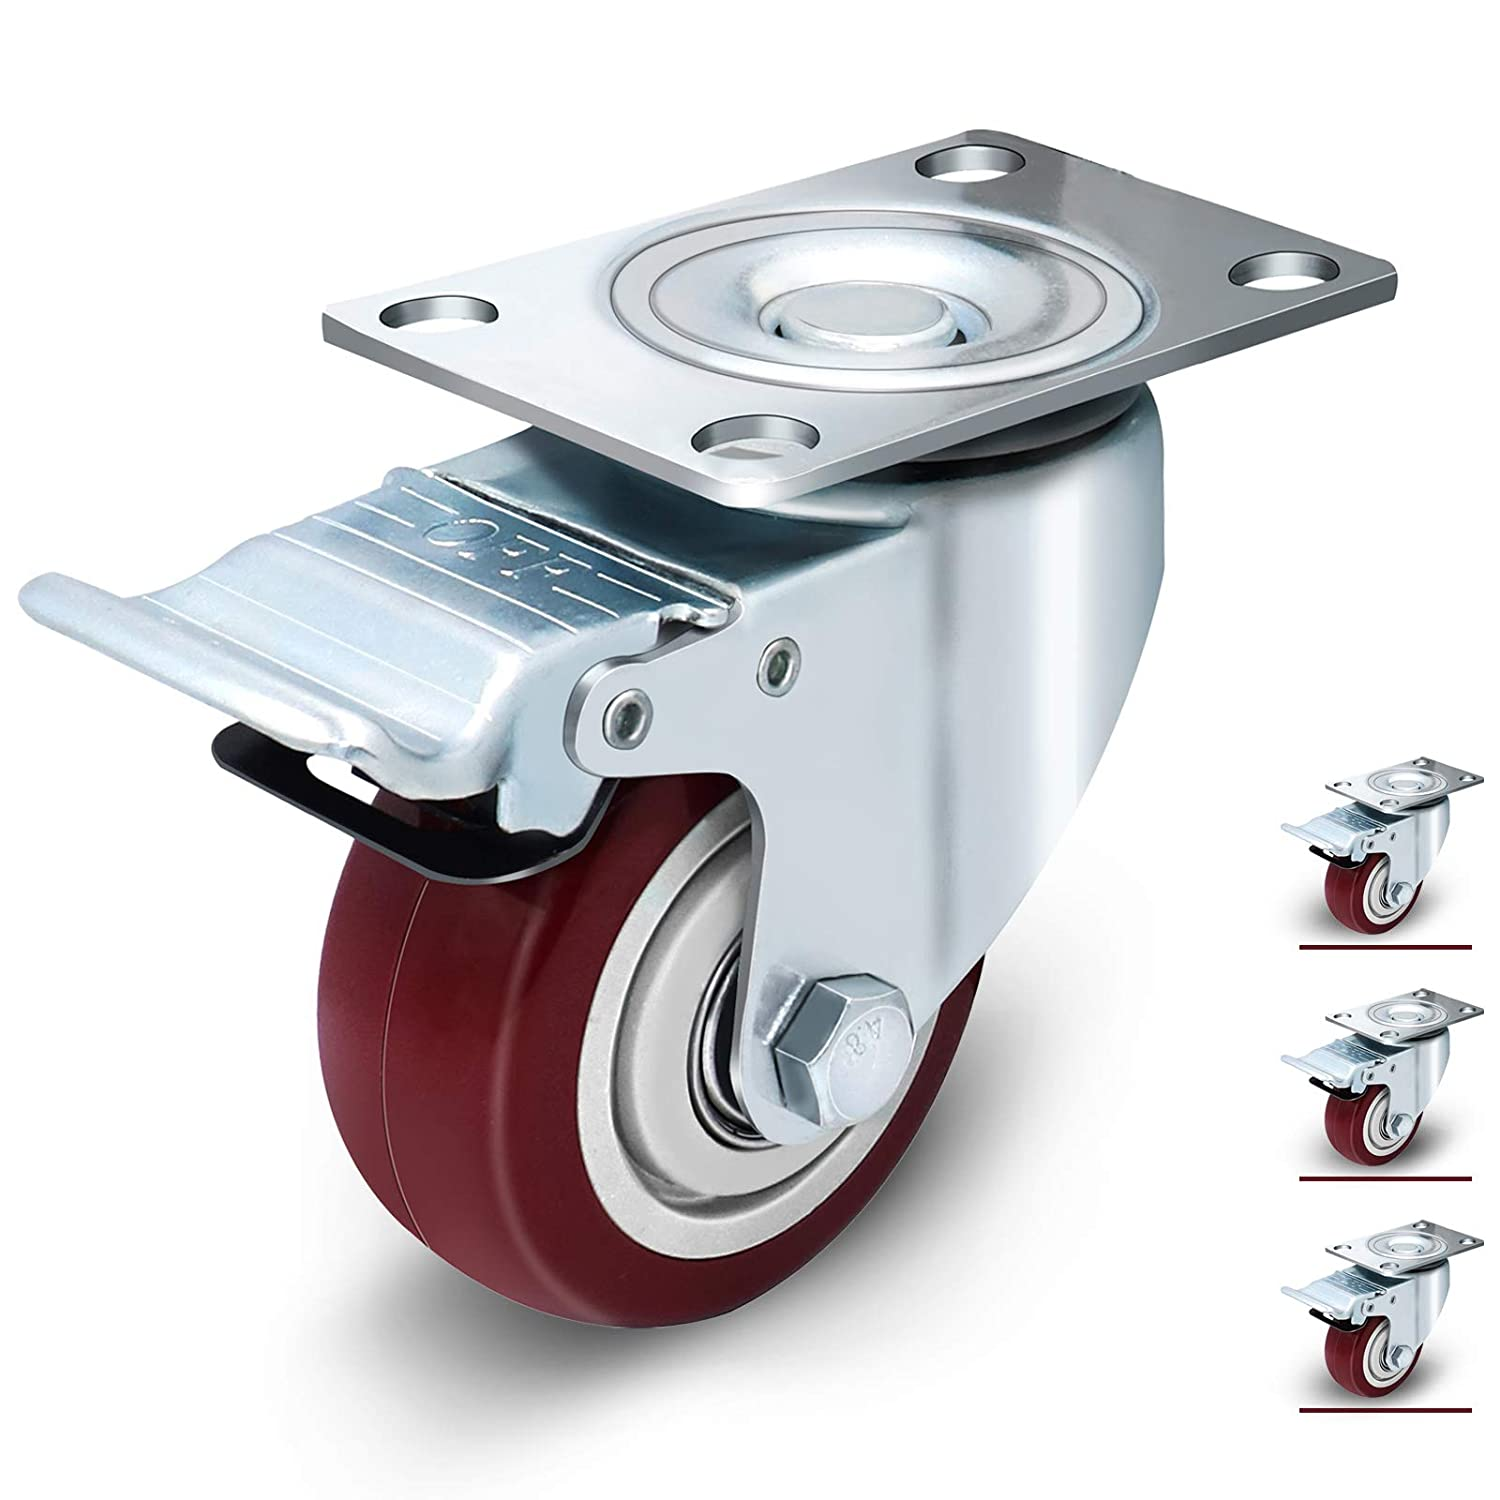 3 inch Heavy Duty Casters Set of 4 With Brake, Dual Locking Swivel Casters Load 1200lbs, Swivel Plate Caster Wheels for Workbence and Furniture (Free M8 Screws and Spanner)